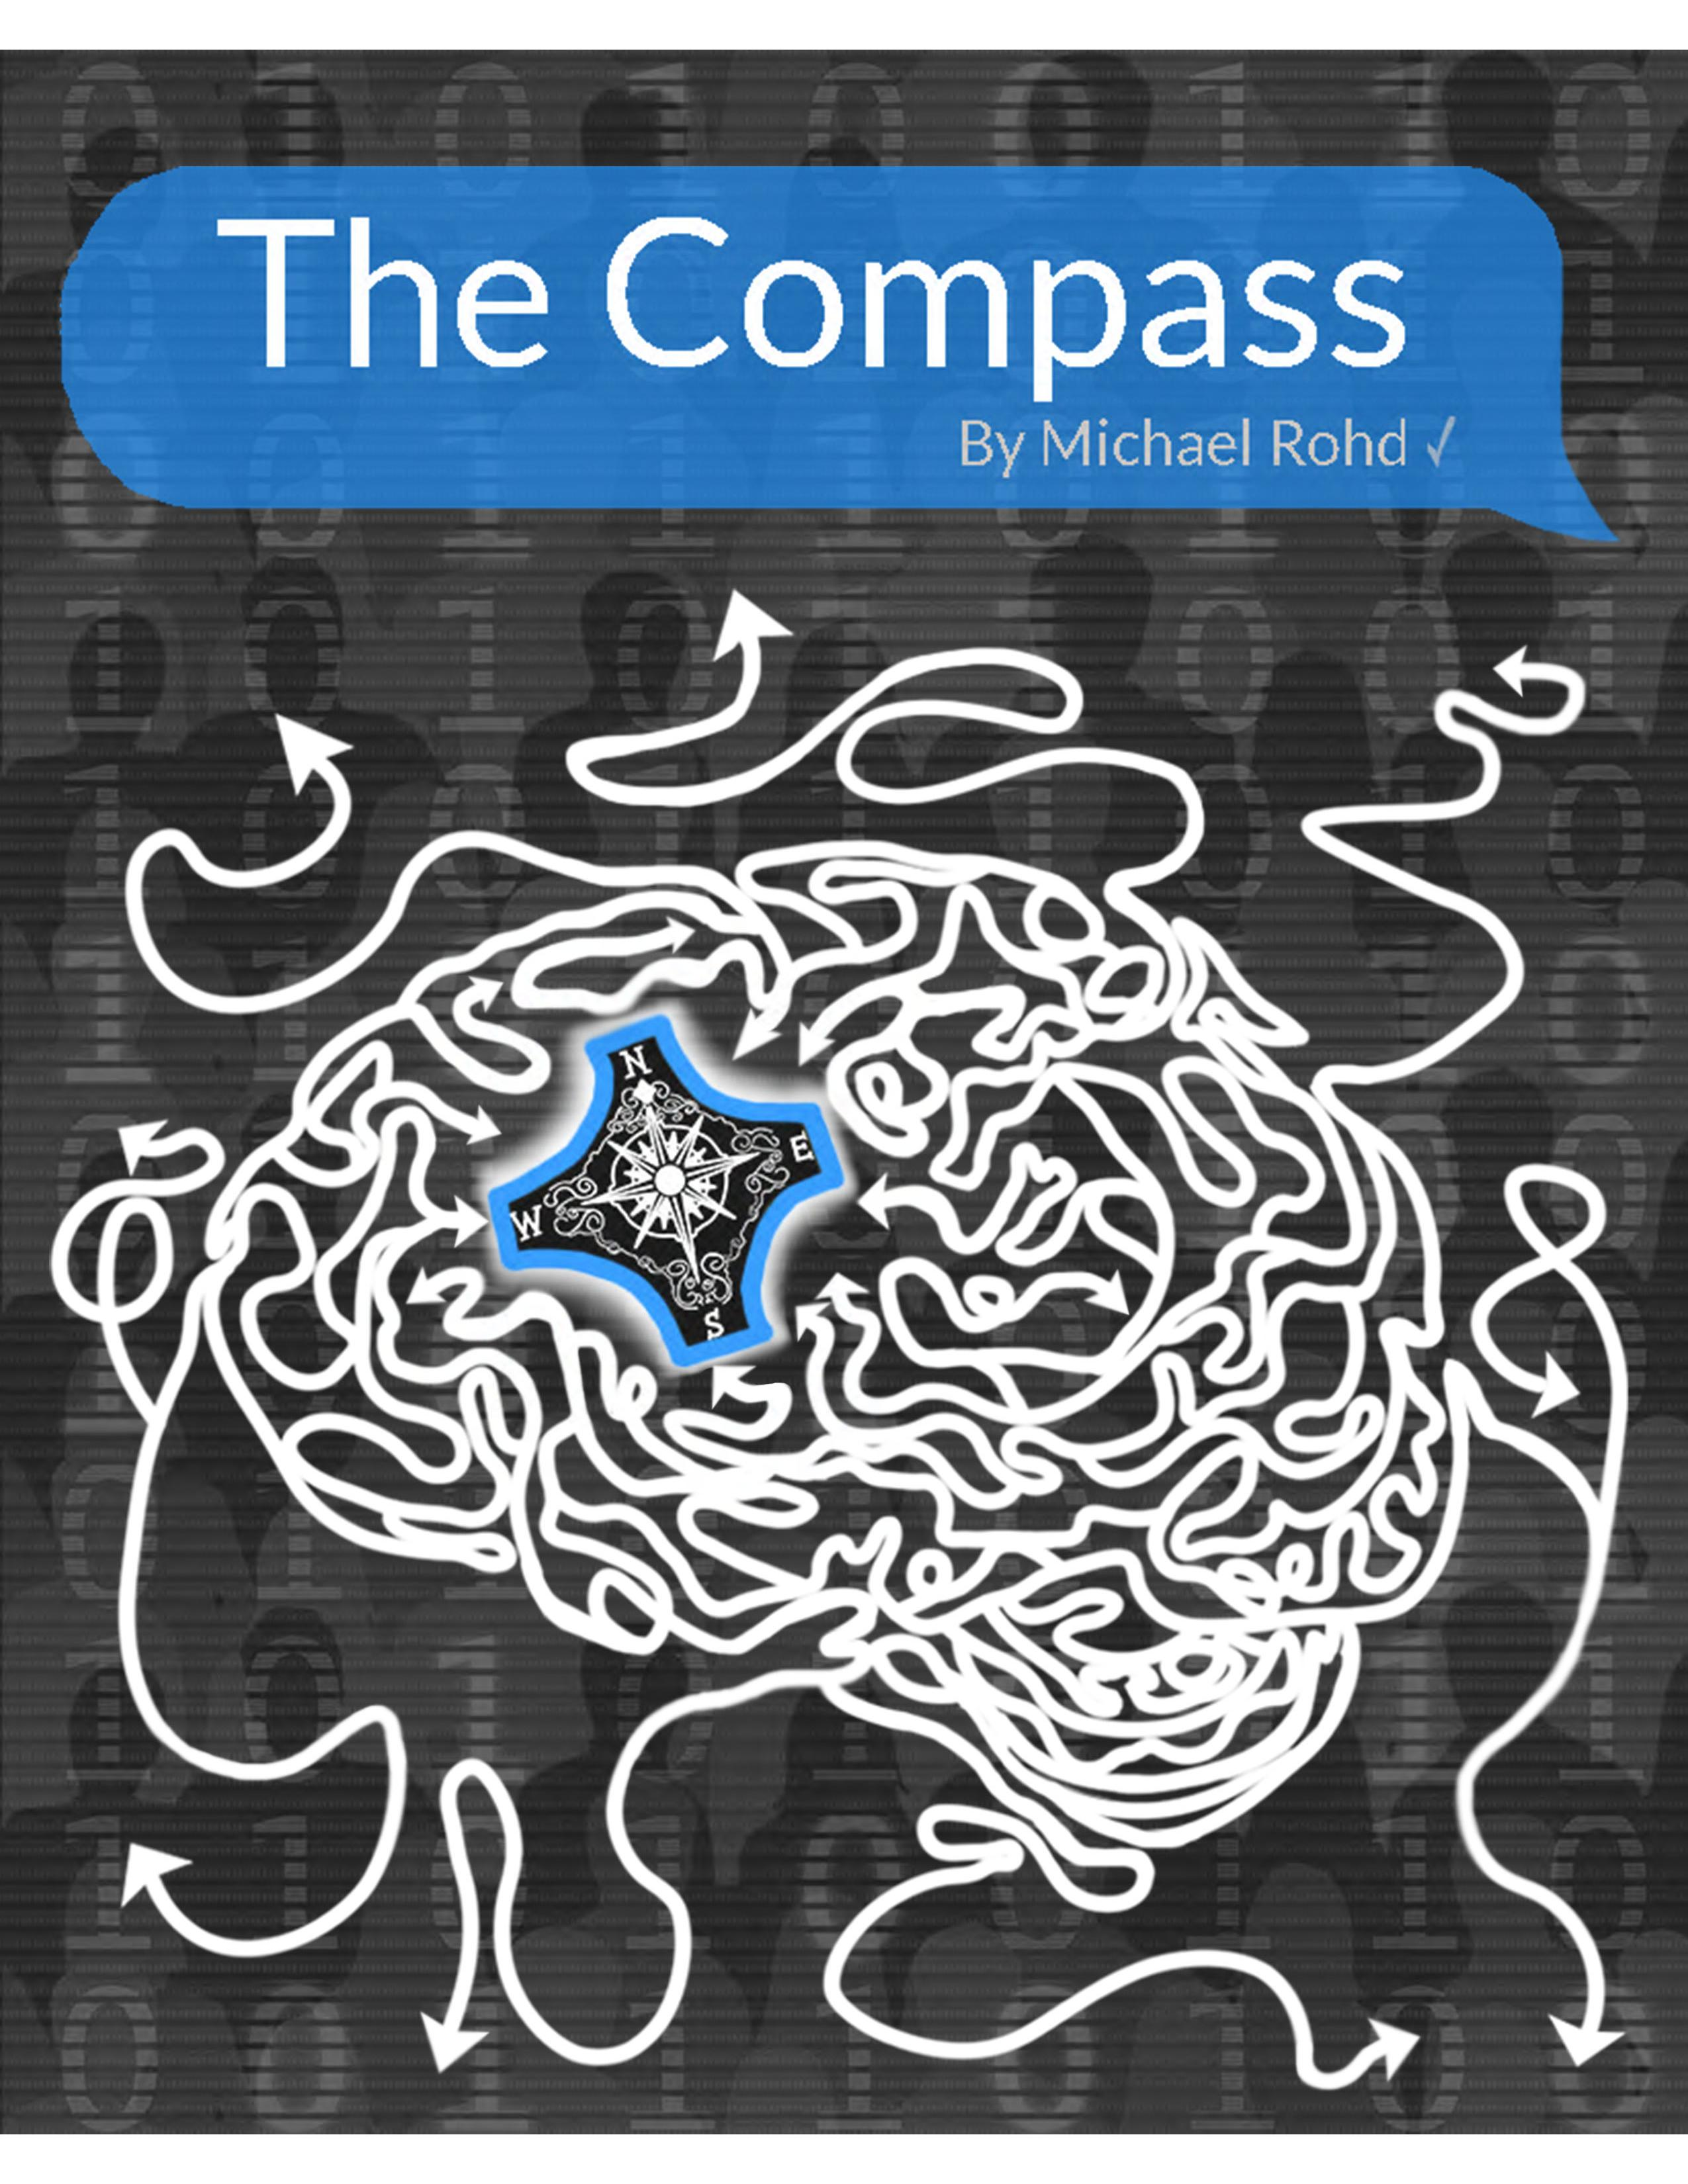 Poster for The Compass. Graphic of a brain made up of twisting arrows with a compass embedded inside.